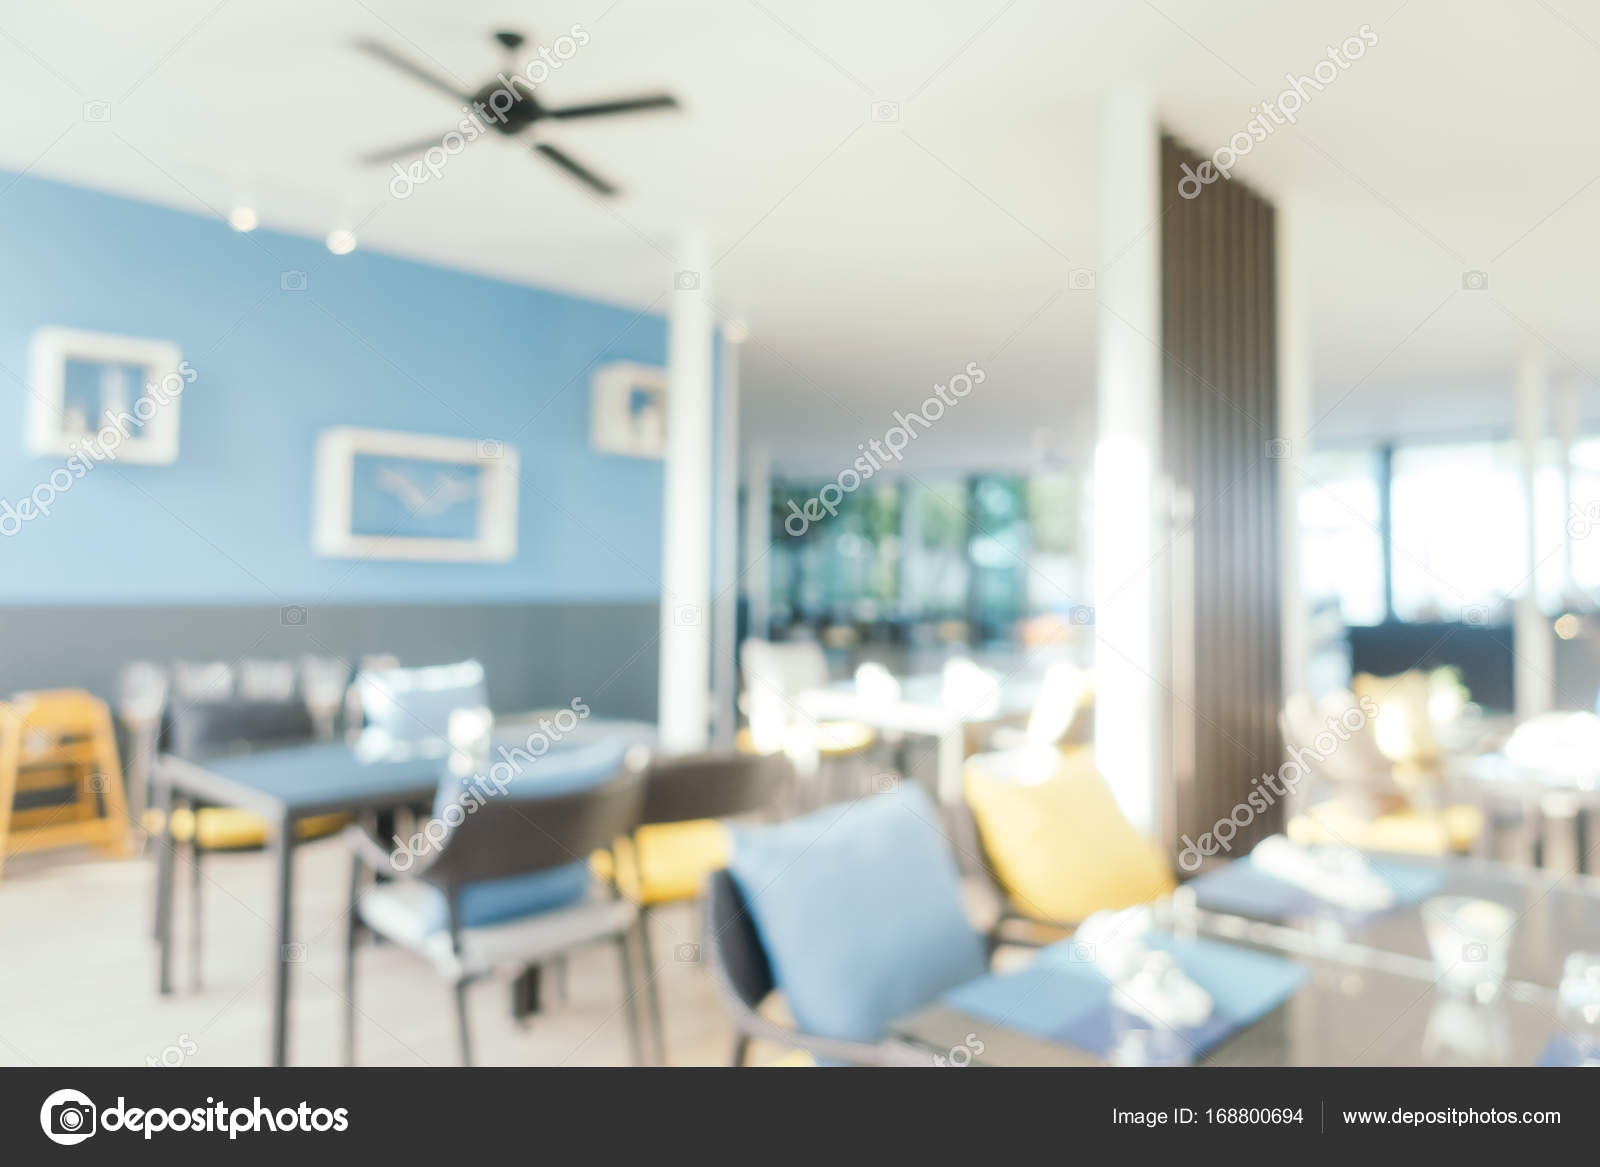 Abstract Blur Coffee Shop Cafe And Restaurant Interior Stock Photo C Mrsiraphol 168800694